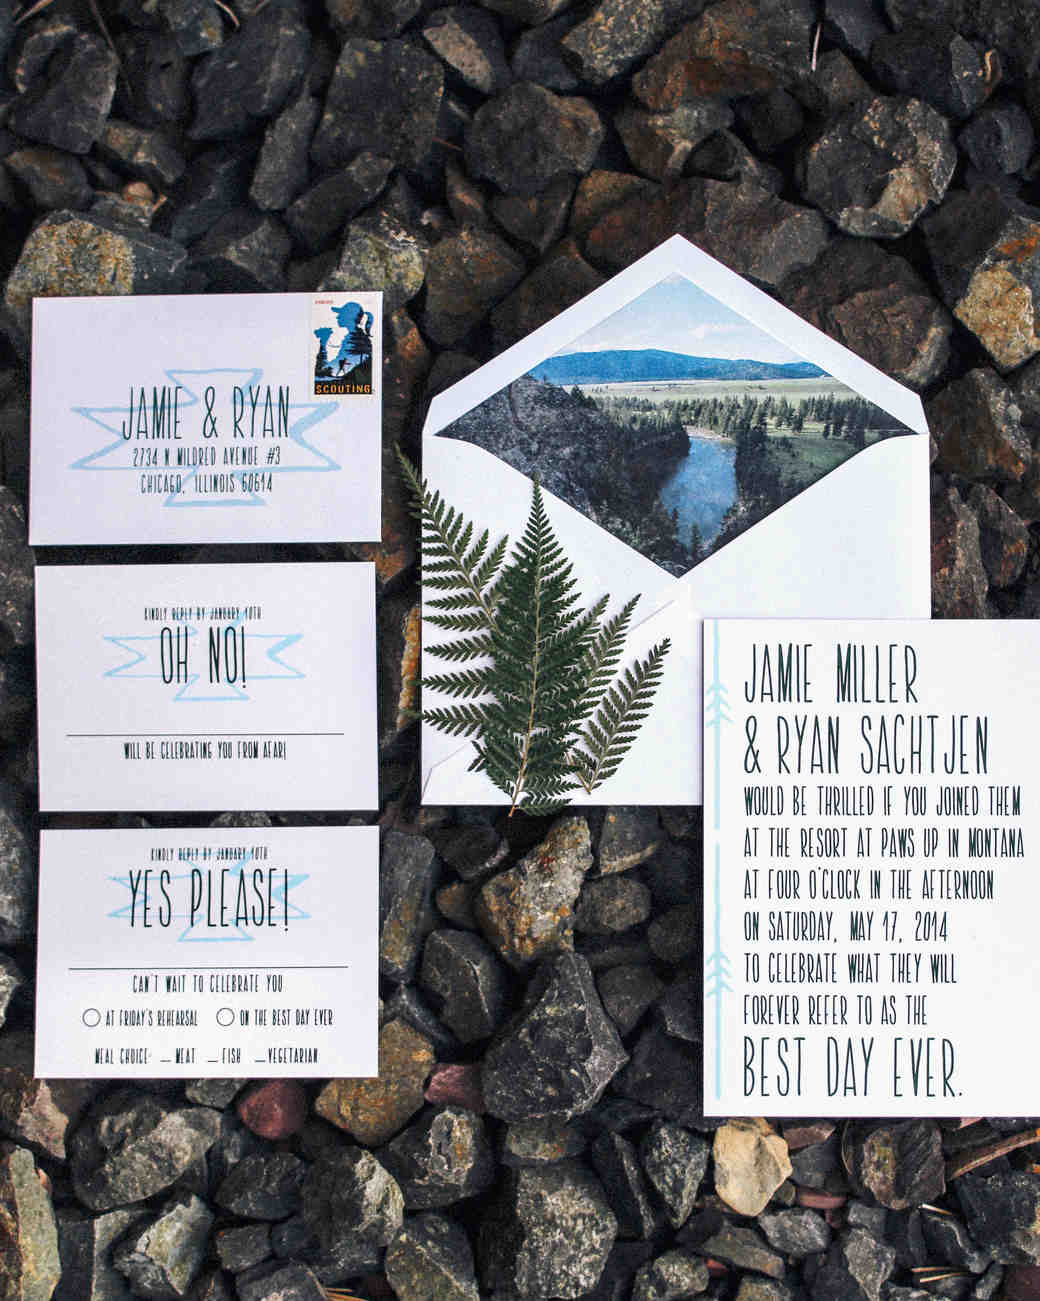 jamie-ryan-wedding-invite-006-s111523-0914.jpg